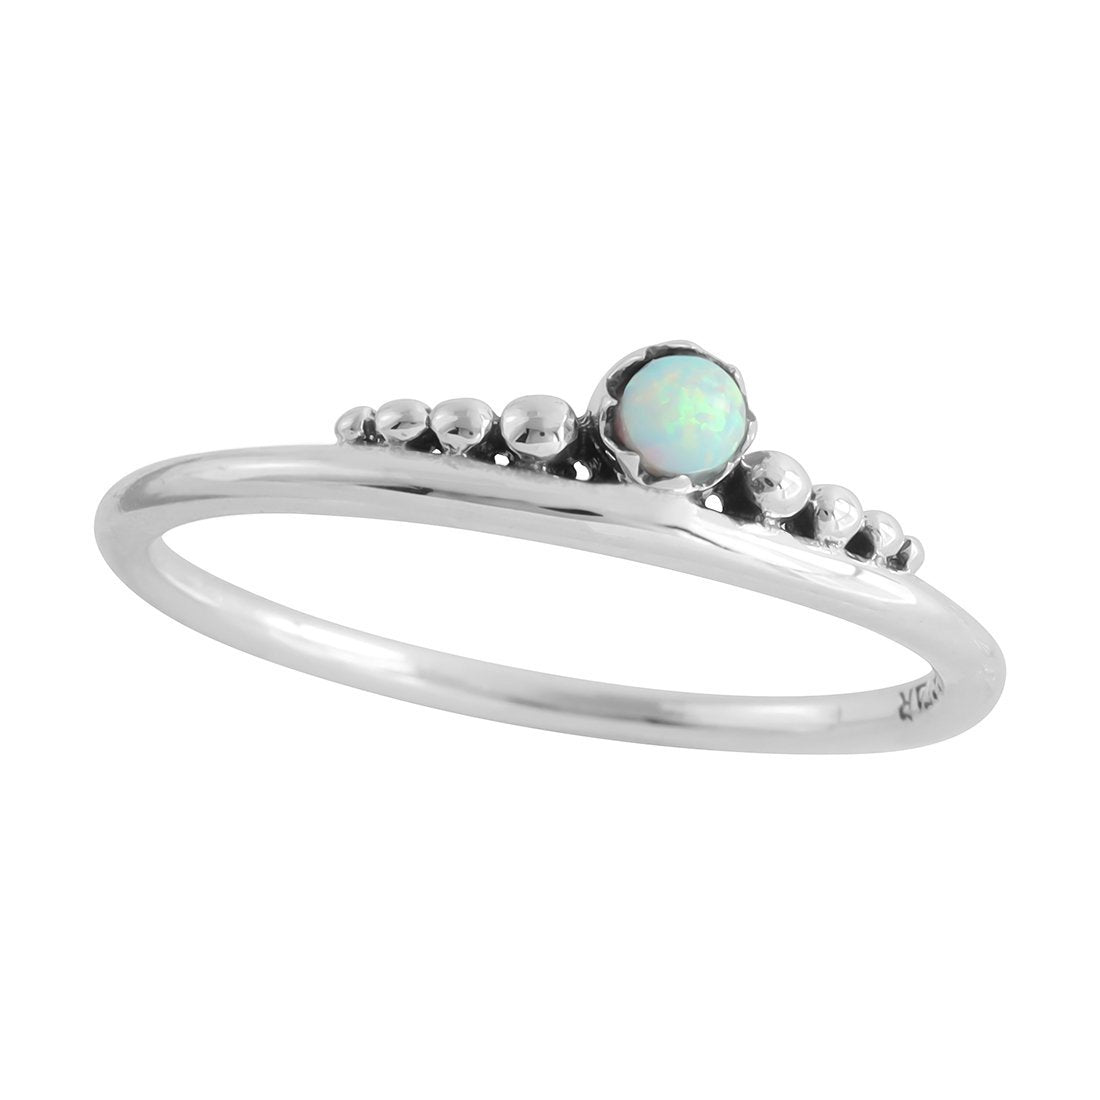 Midsummer Star Ring Delicate Crown Opal Ring